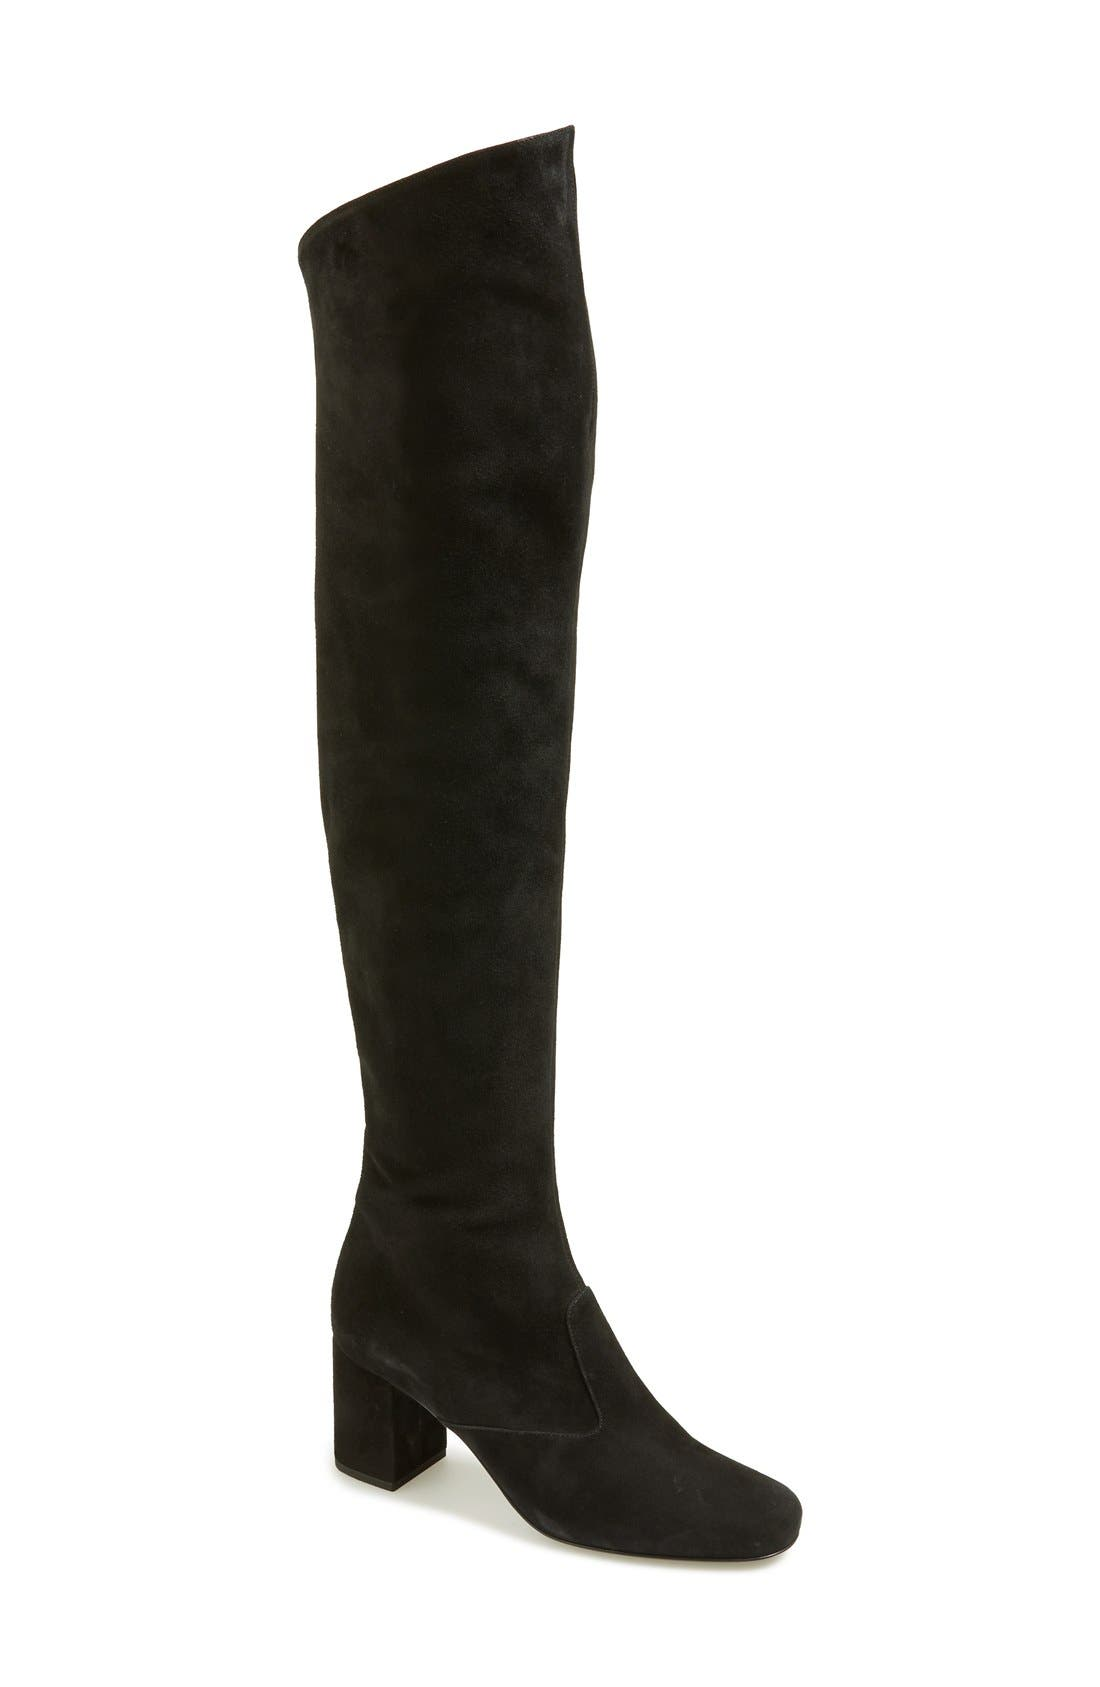 'Babies' Over the Knee Boot,                             Main thumbnail 1, color,                             001